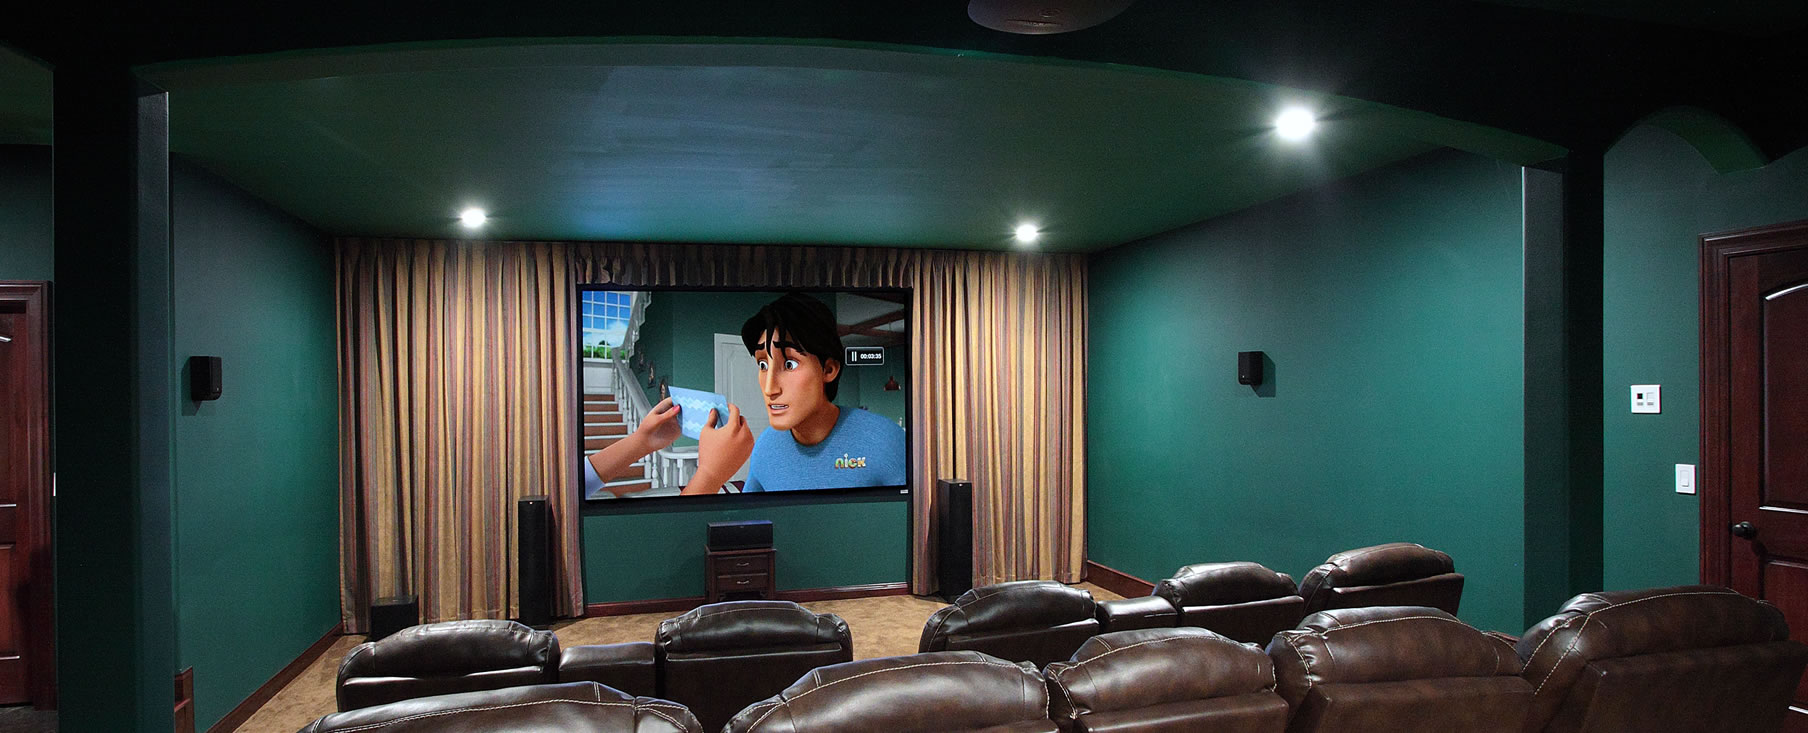 Affordable Audio/Video Installation & Solutions - ABC Audio Video